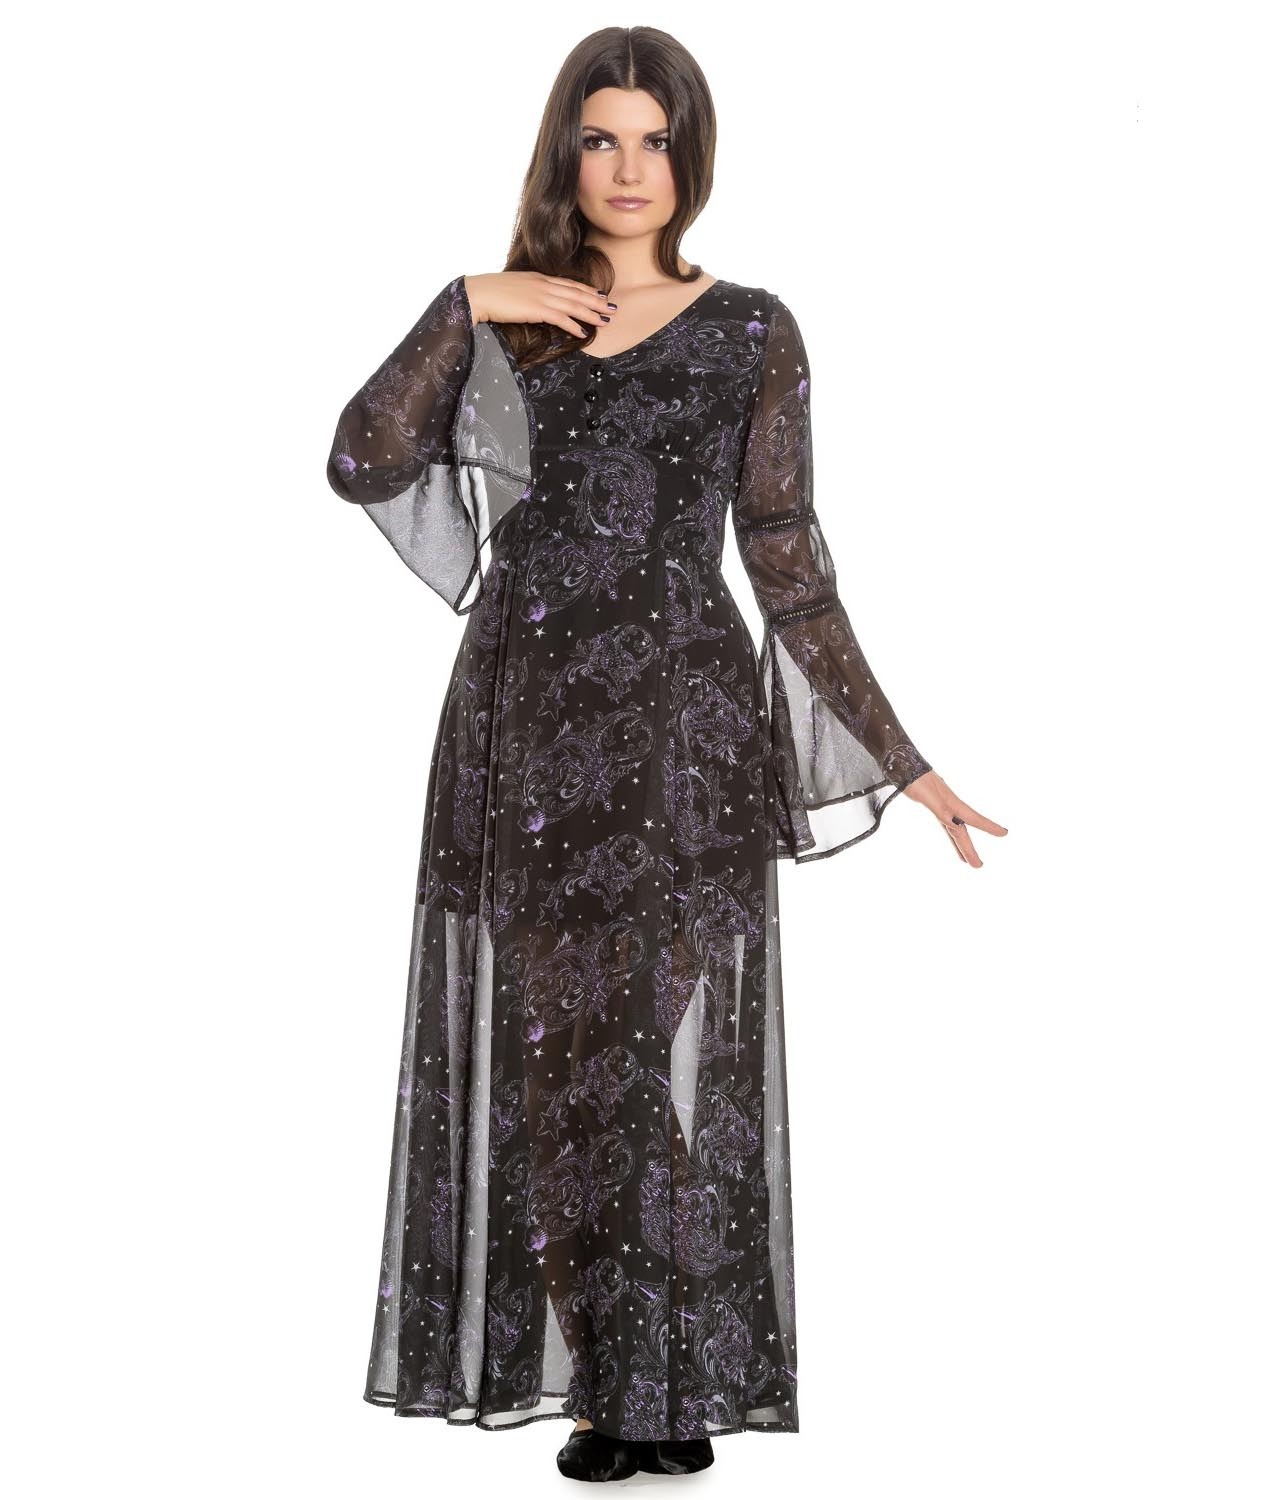 Hell-Bunny-Spin-Doctor-Goth-Maxi-Dress-DARK-SEA-Mermaid-Skeletons-All-Sizes thumbnail 23